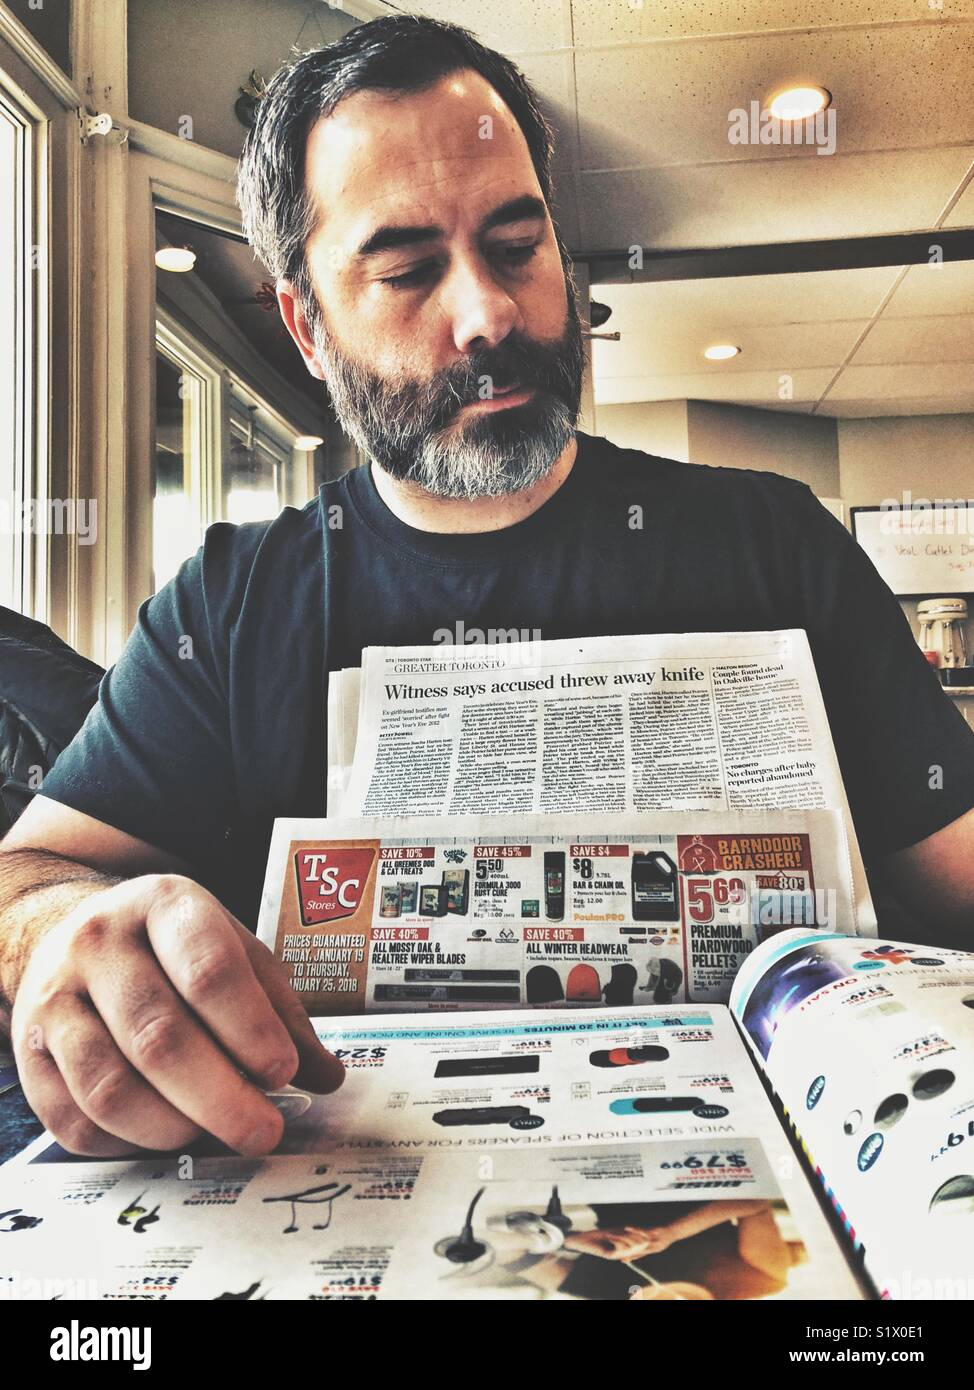 Middle aged man with beard reading a newspaper in a diner - Stock Image